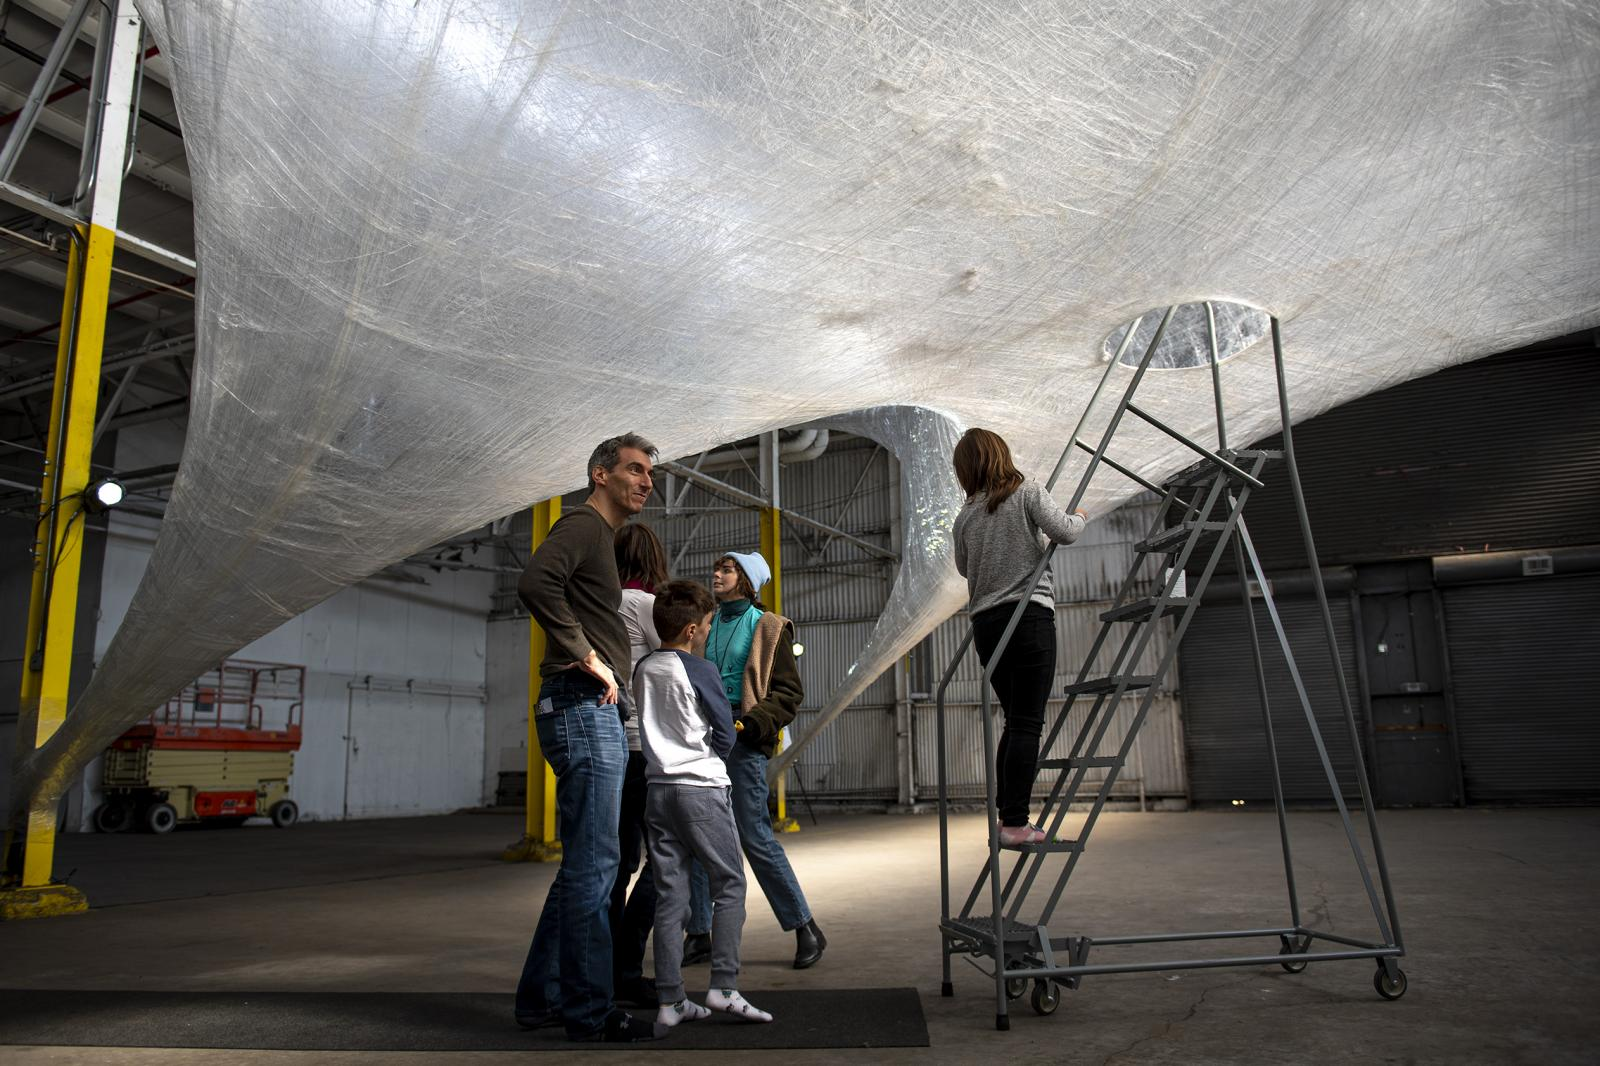 Michael Insogna and his family get ready to enter the cocoon in the Building 694 at the Navy Yard, in Philadelphia, Pa, on Sat, Nov. 9, 2019.